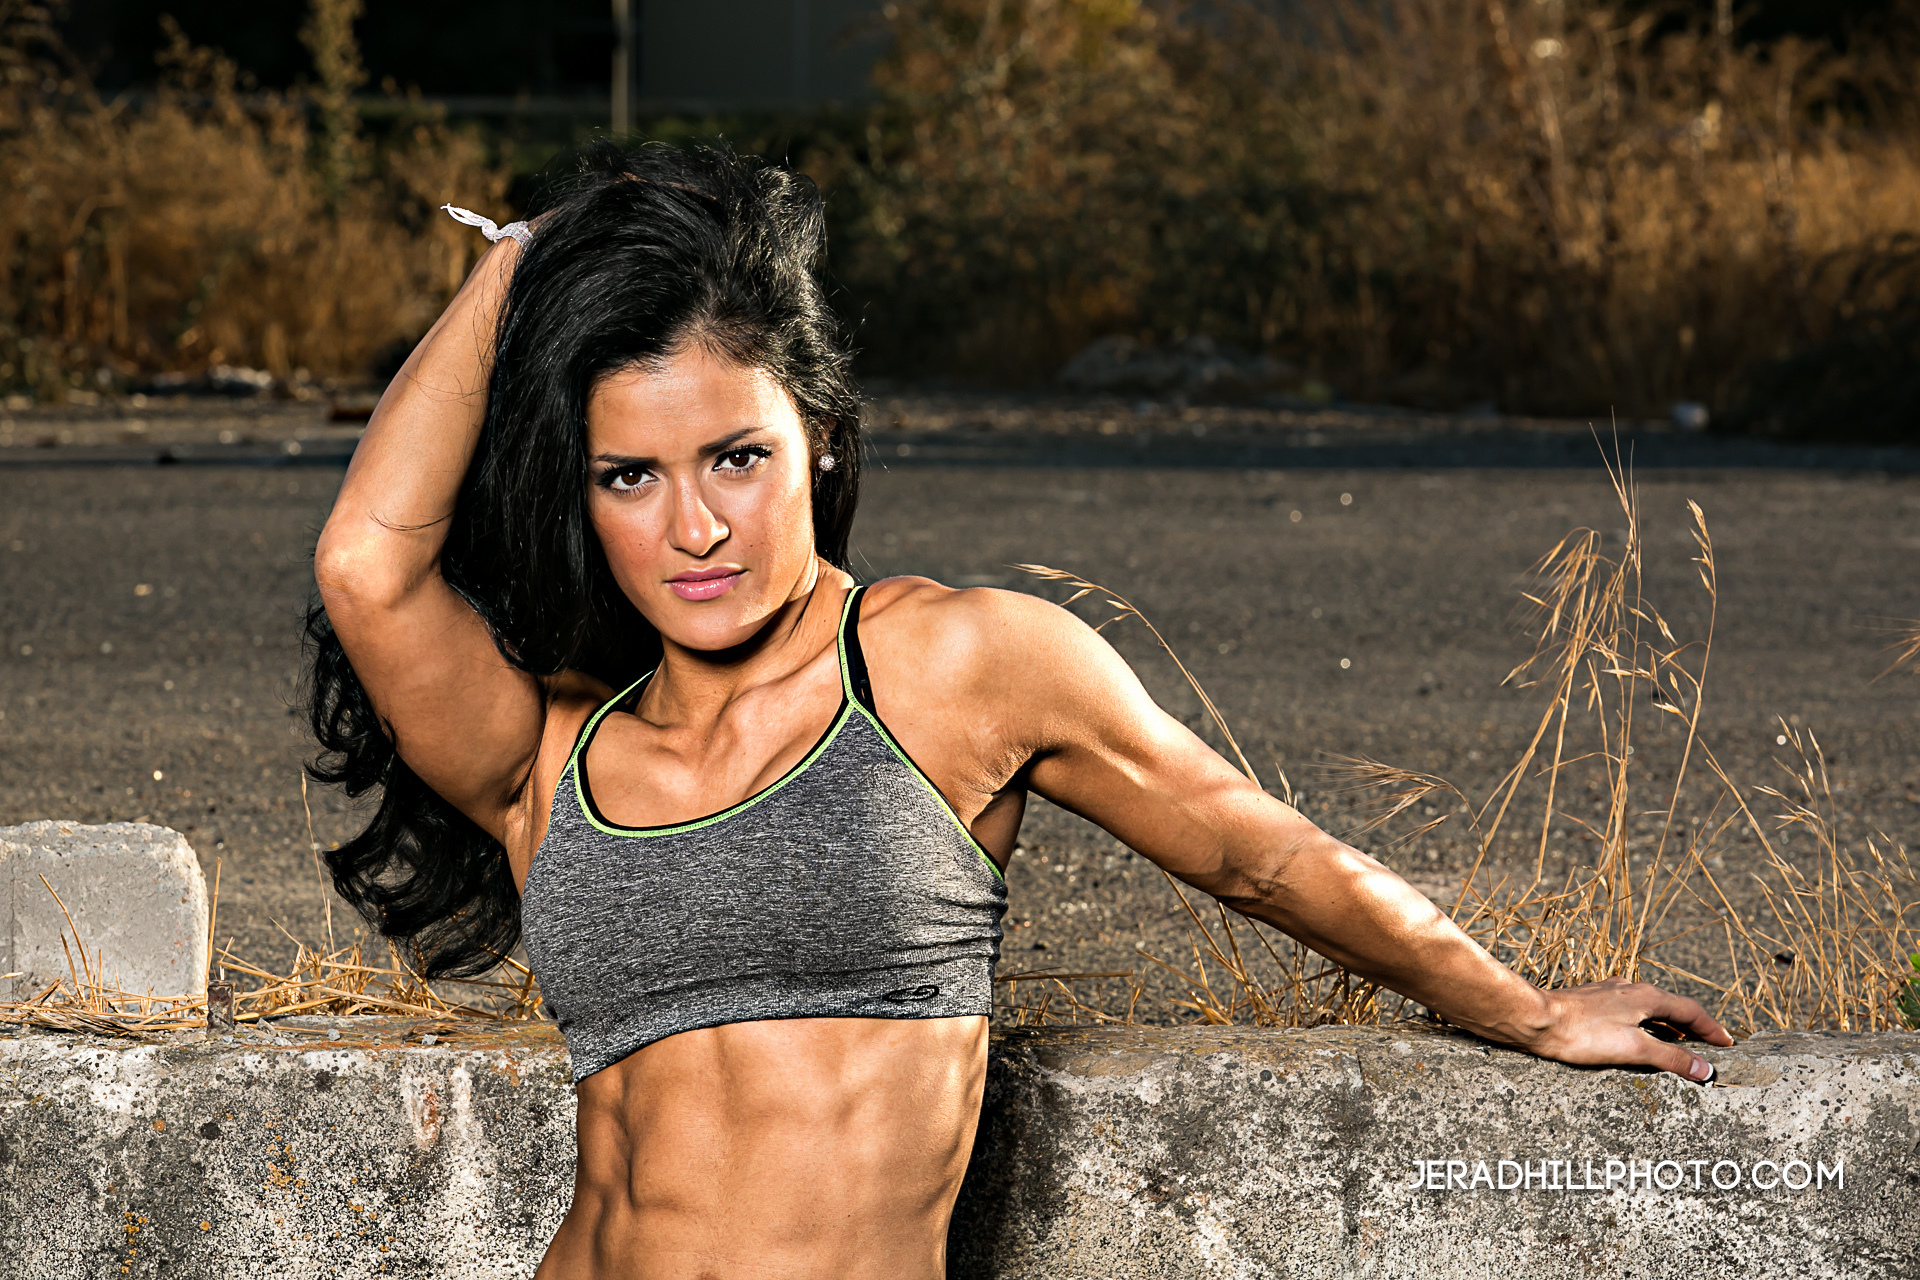 Pictures Of Jessica Arevalo